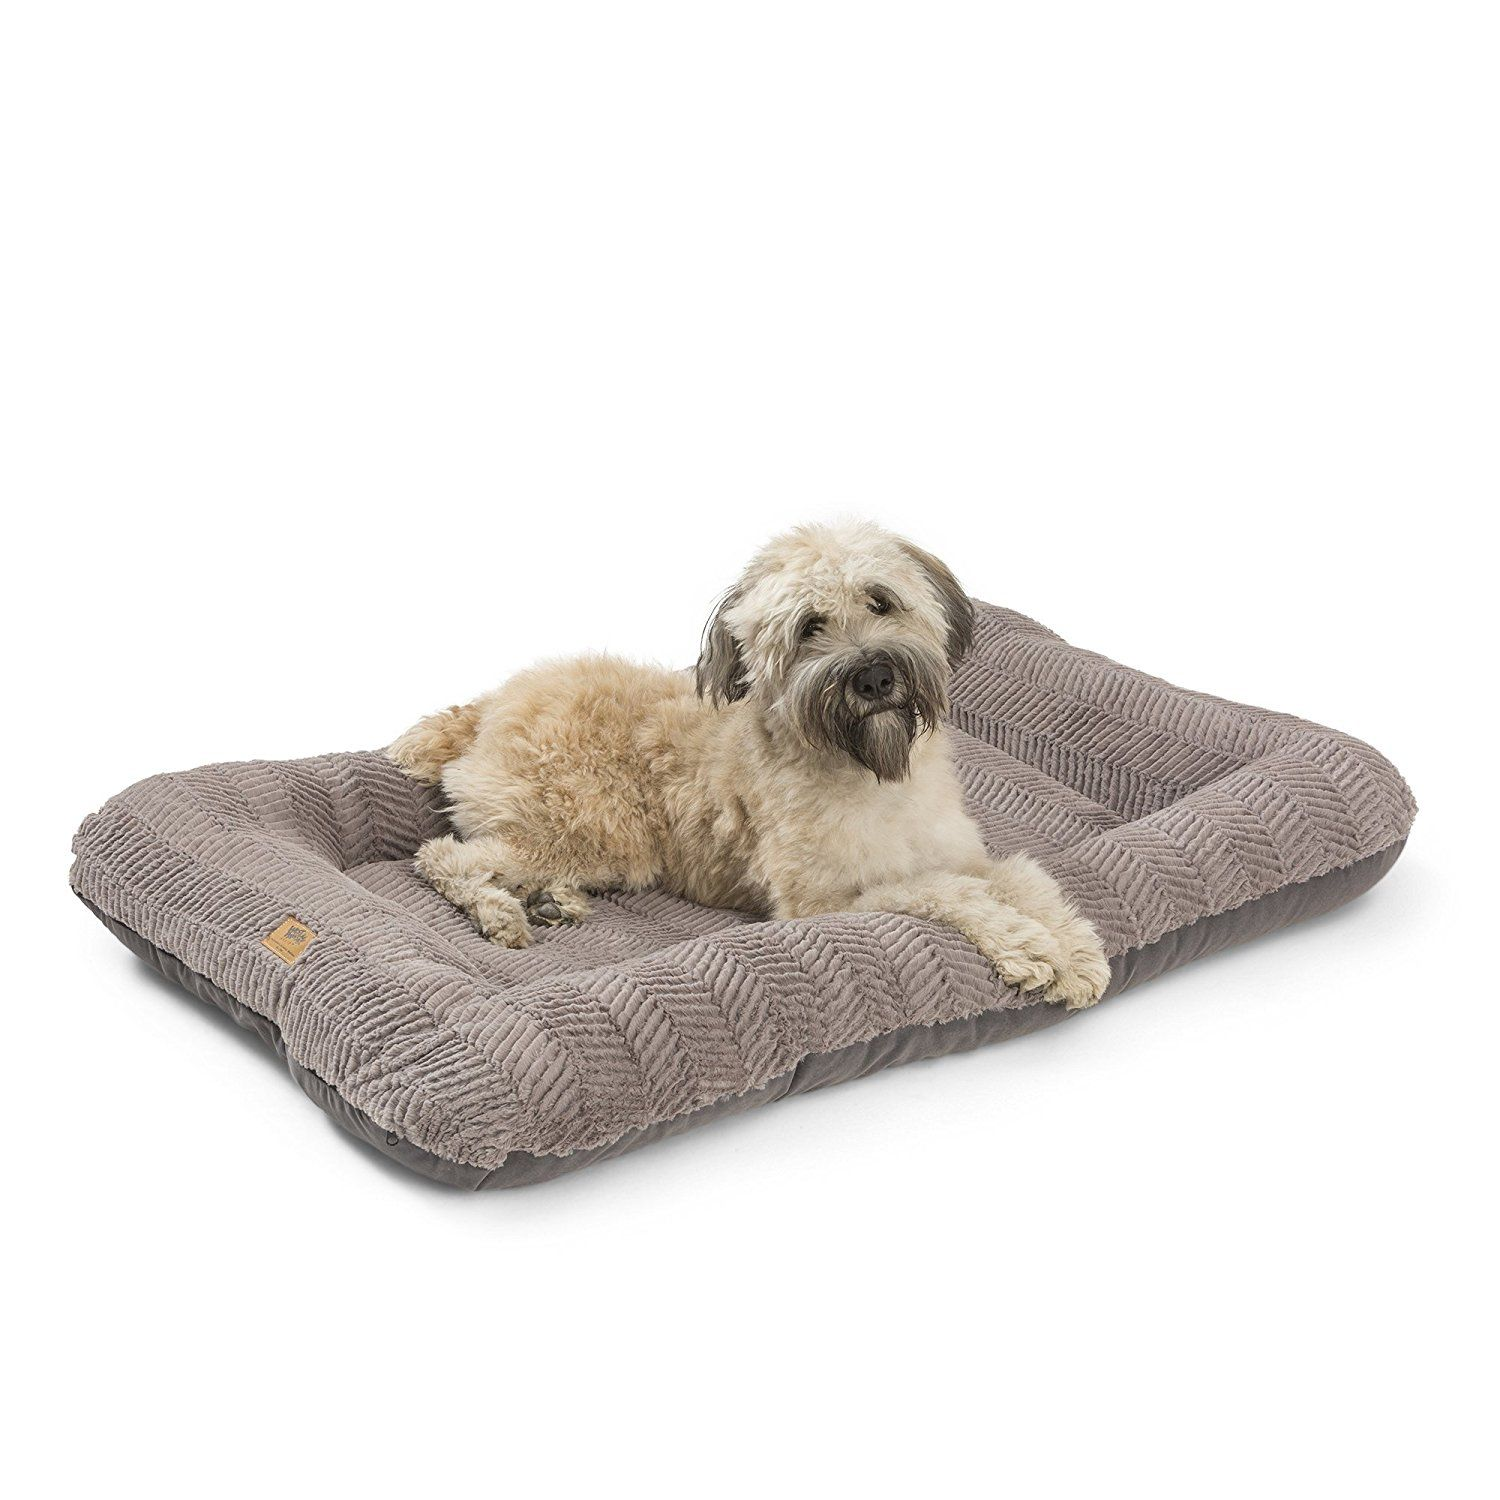 West Paw Design Heyday Dog Bed with Microsuede, Super